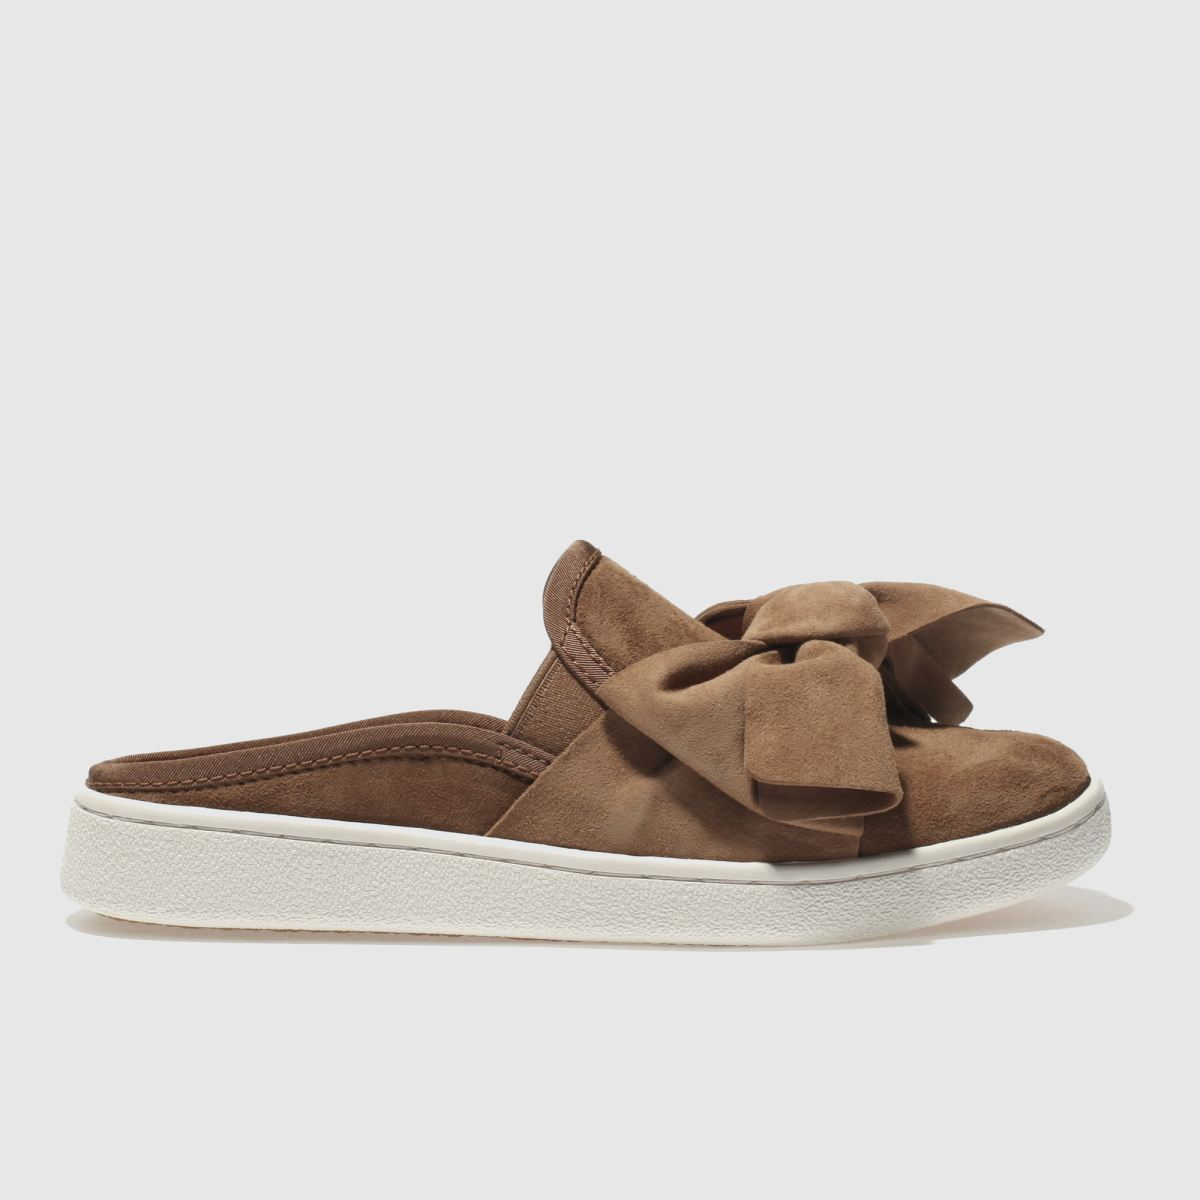 Ugg Tan Luci Bow Flat Shoes